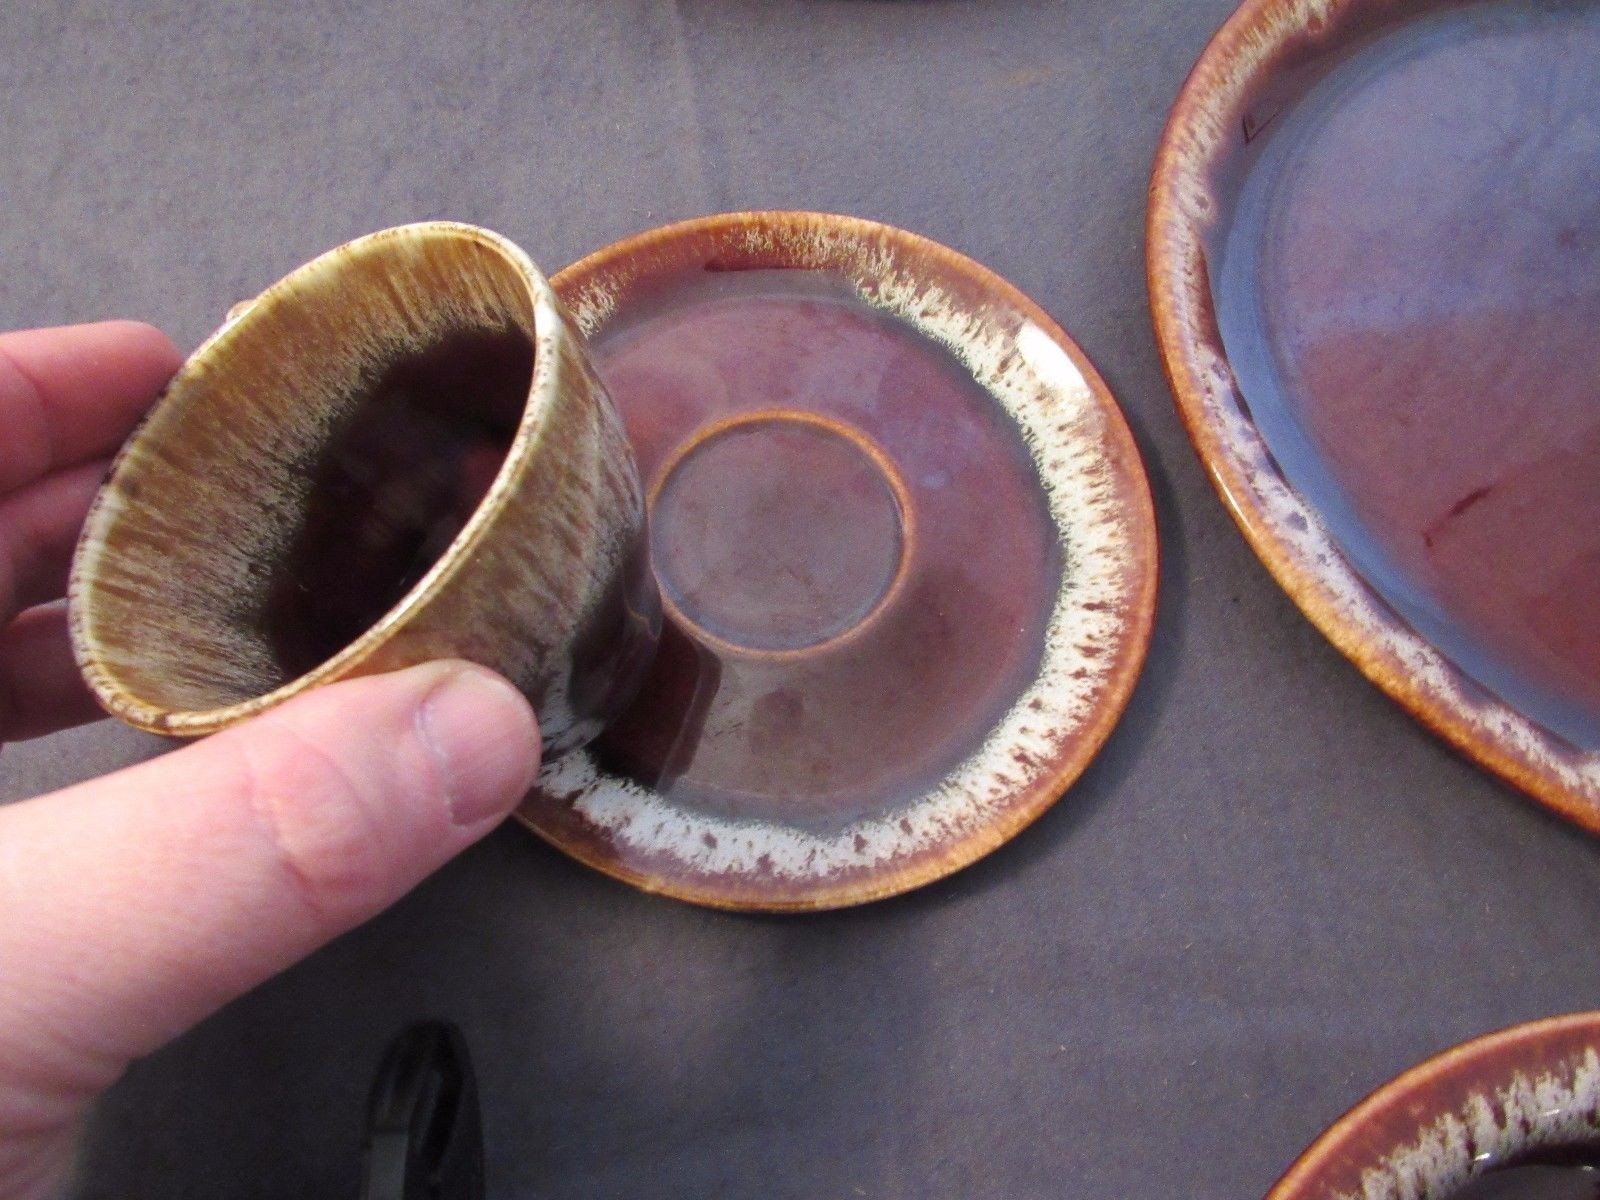 Dinner Plates Saucers Bowls Cups Brown Drip Glaze Hull? Replacement Pieces